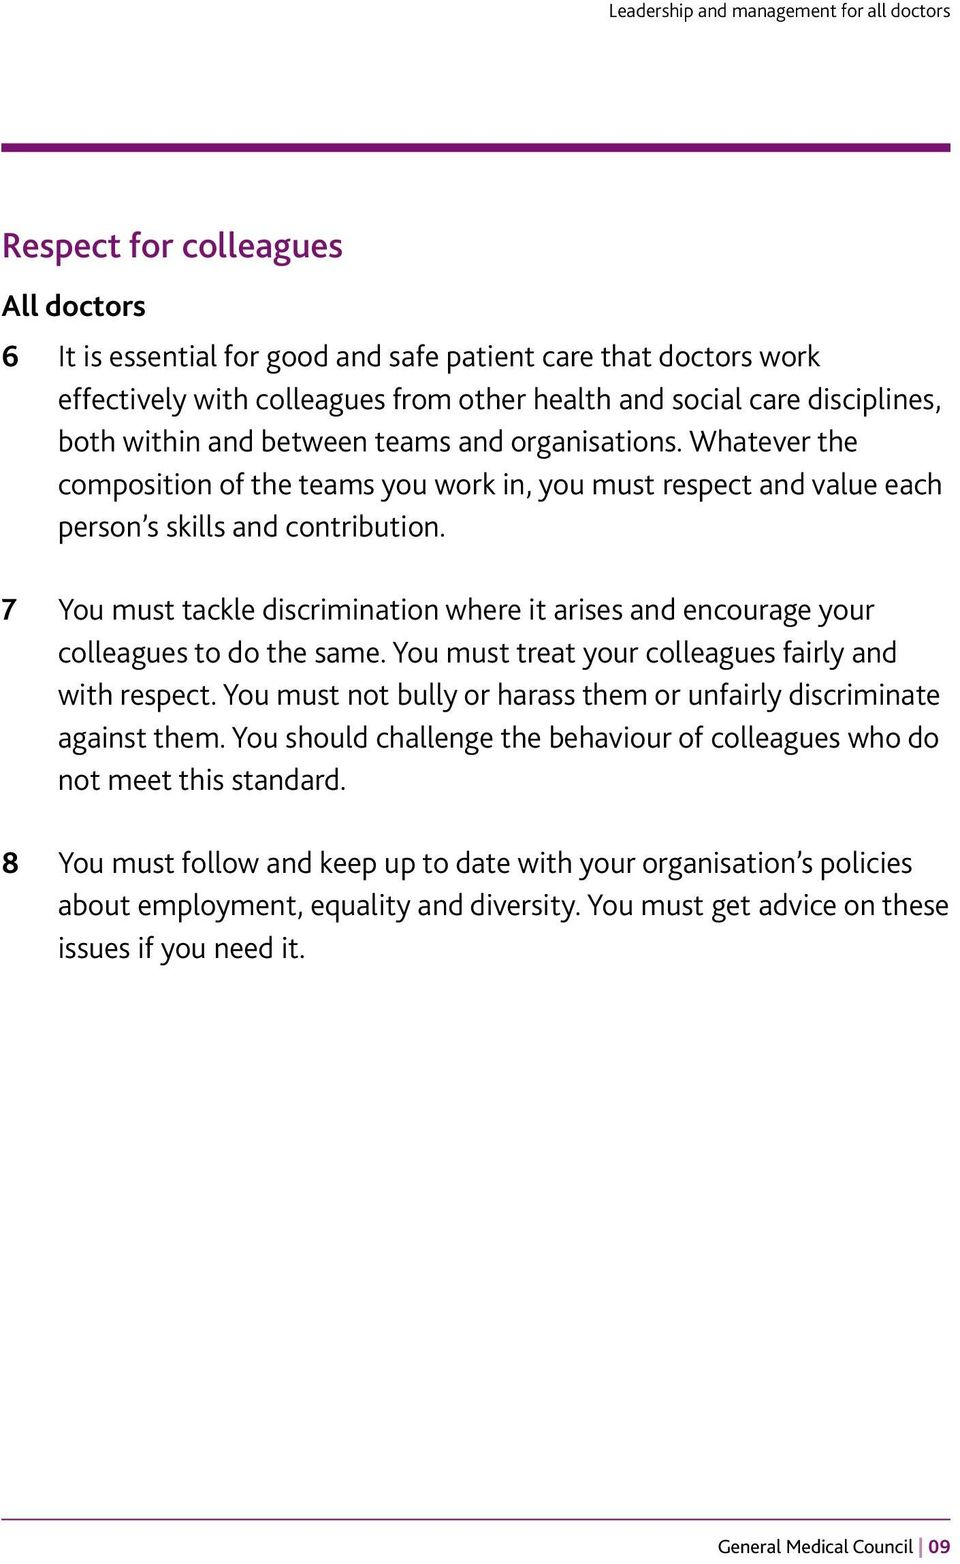 7 You must tackle discrimination where it arises and encourage your colleagues to do the same. You must treat your colleagues fairly and with respect.